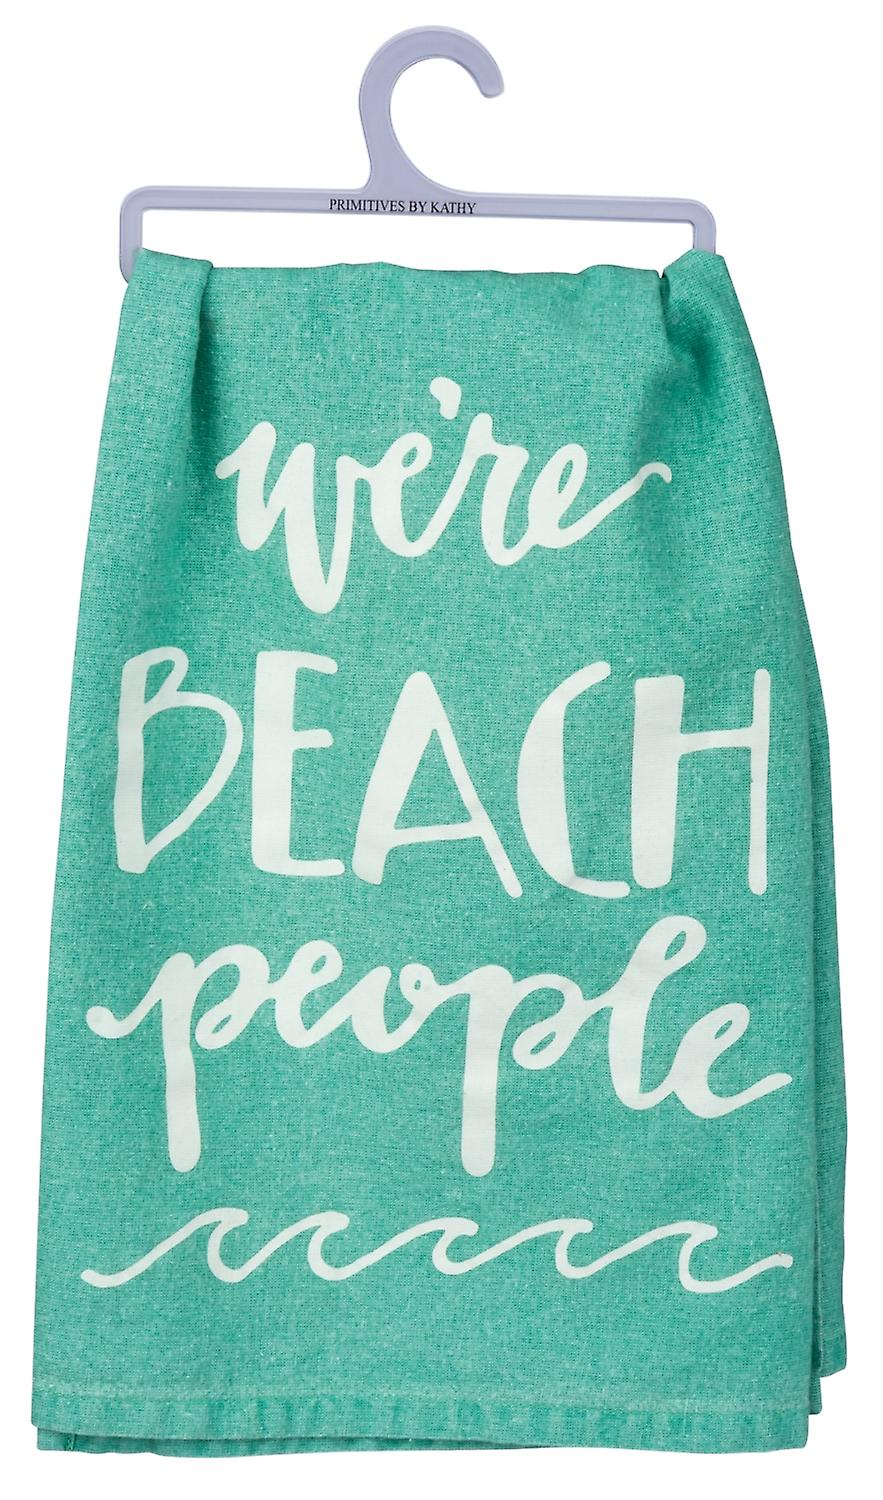 We're Beach People Teal Blue Kitchen Dish Towel Cotton